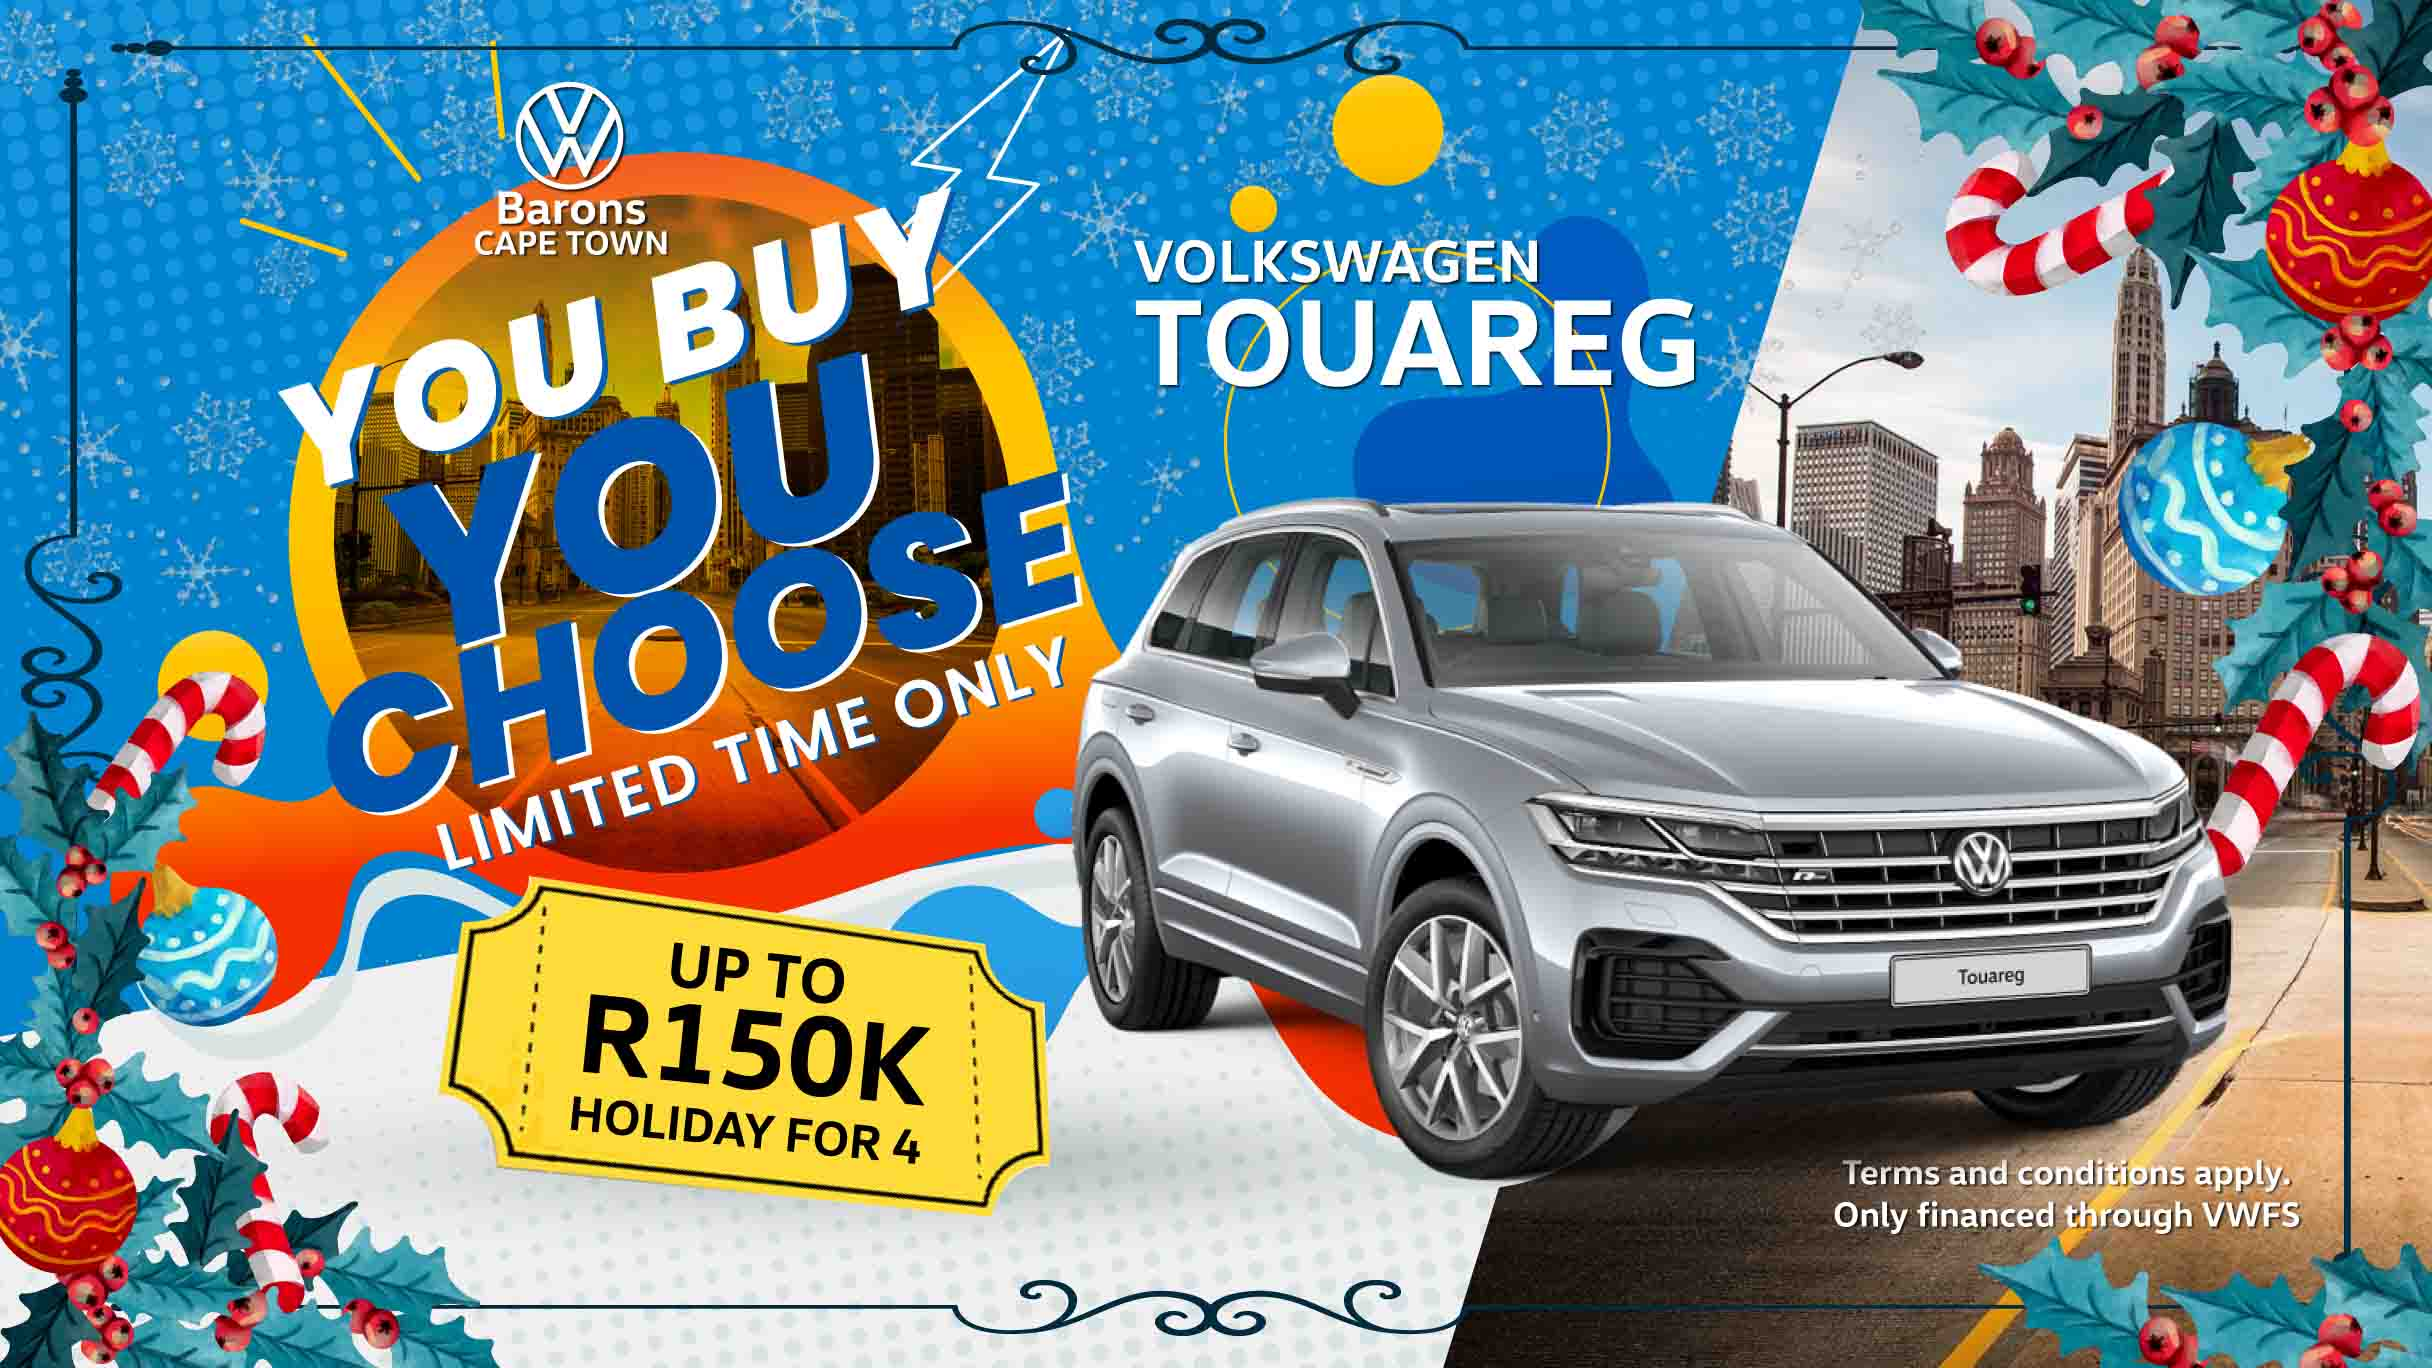 Festive offer on the Touareg at Barons Cape Town